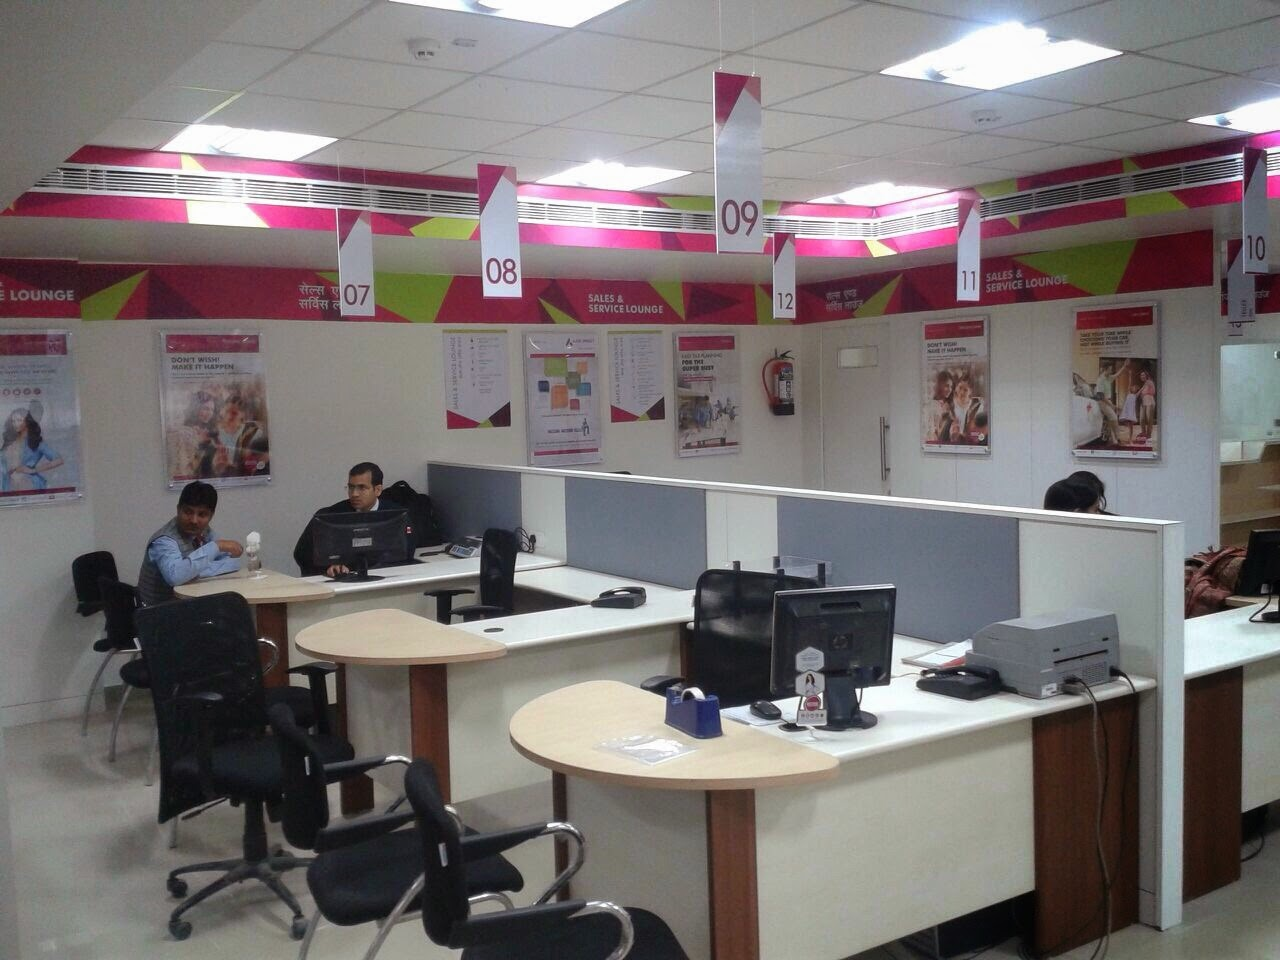 Axis bank branches designed to suit every need and comfort of the customer to the highest order. A customer centric design approach that ensures customer comfort and hence builds better relations and brand loyalty within the customers.